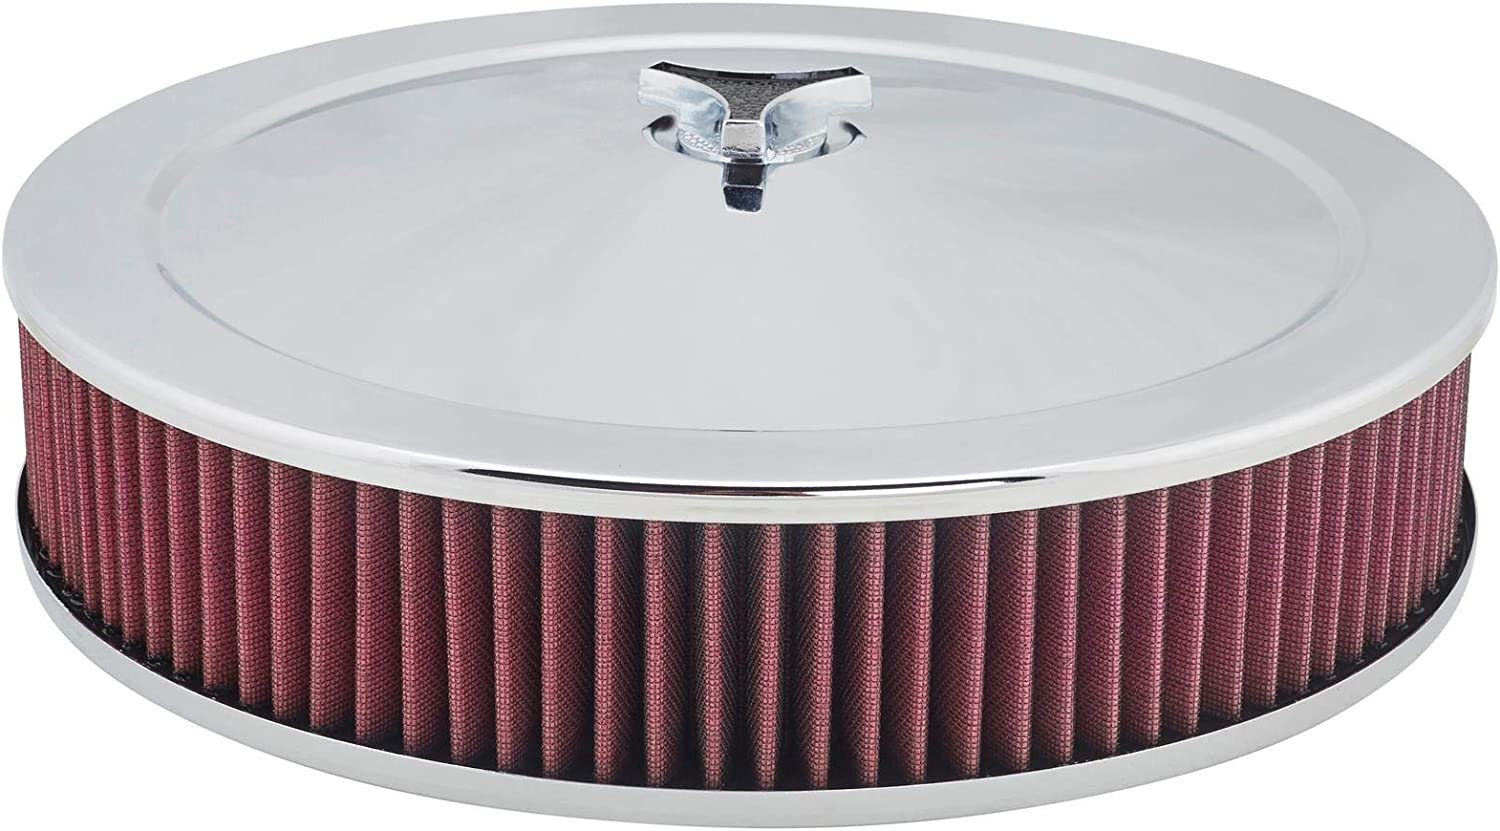 14 x 3 Inch Chrome Air Cleaner with Washable Filter